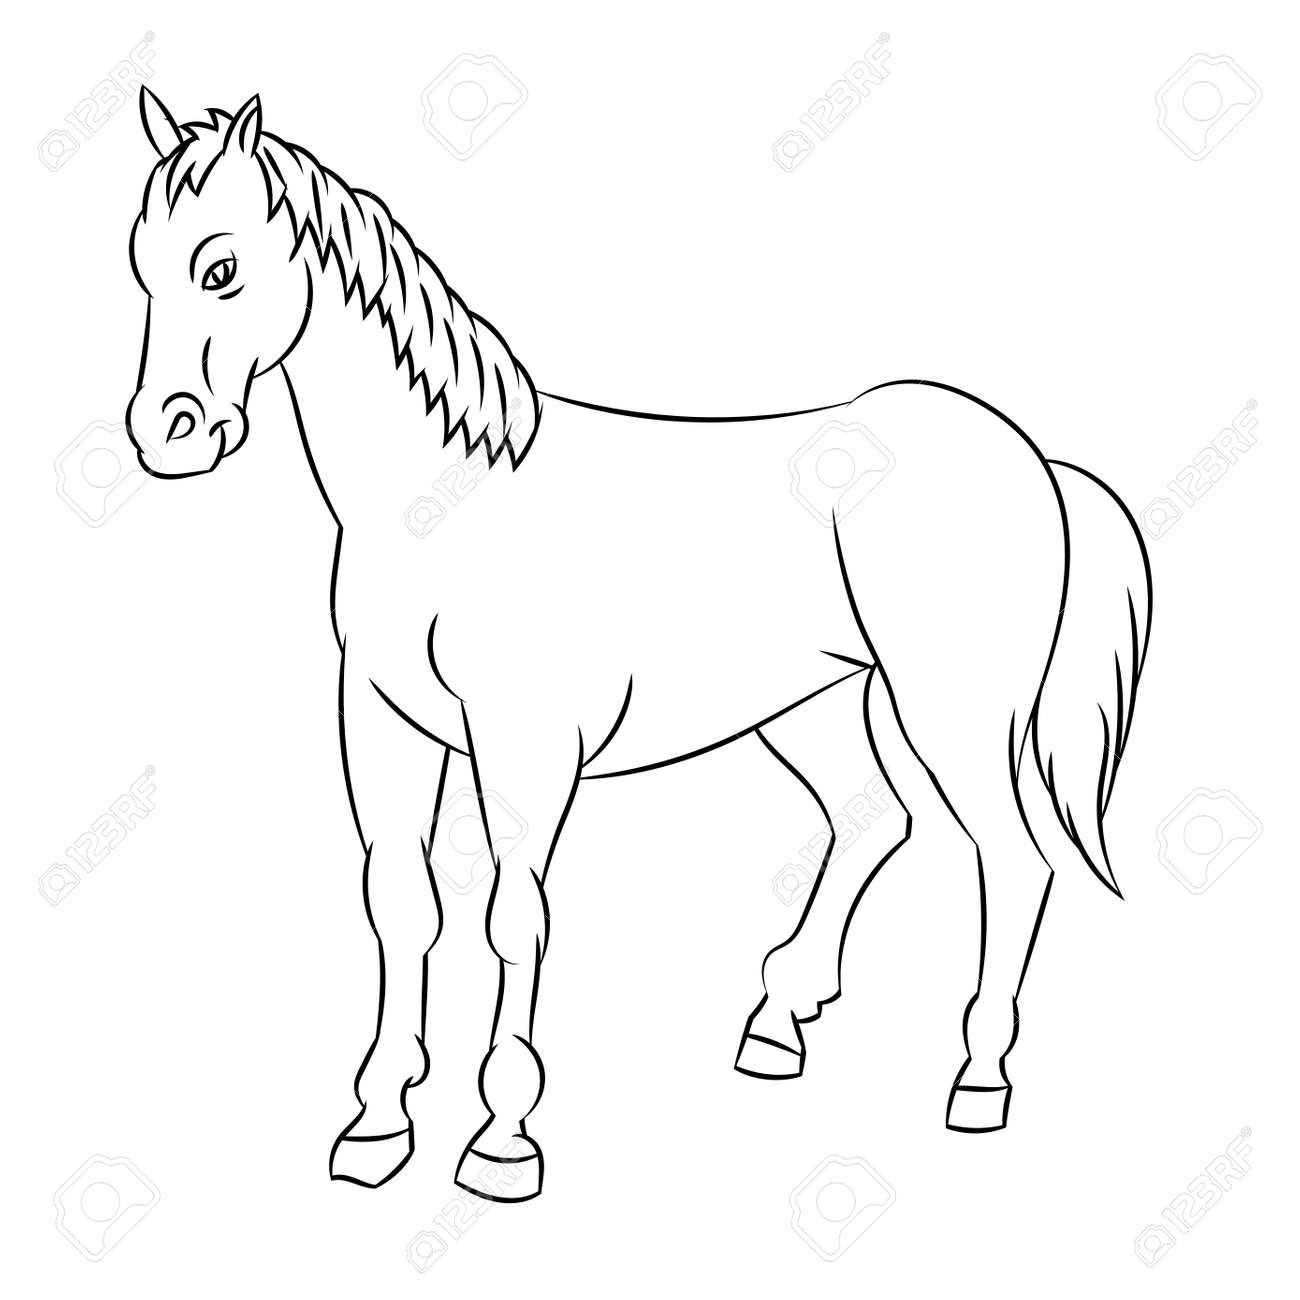 Hand Drawn Sketch Of Horse Isolated Black And White Cartoon Vector Illustration For Coloring Book